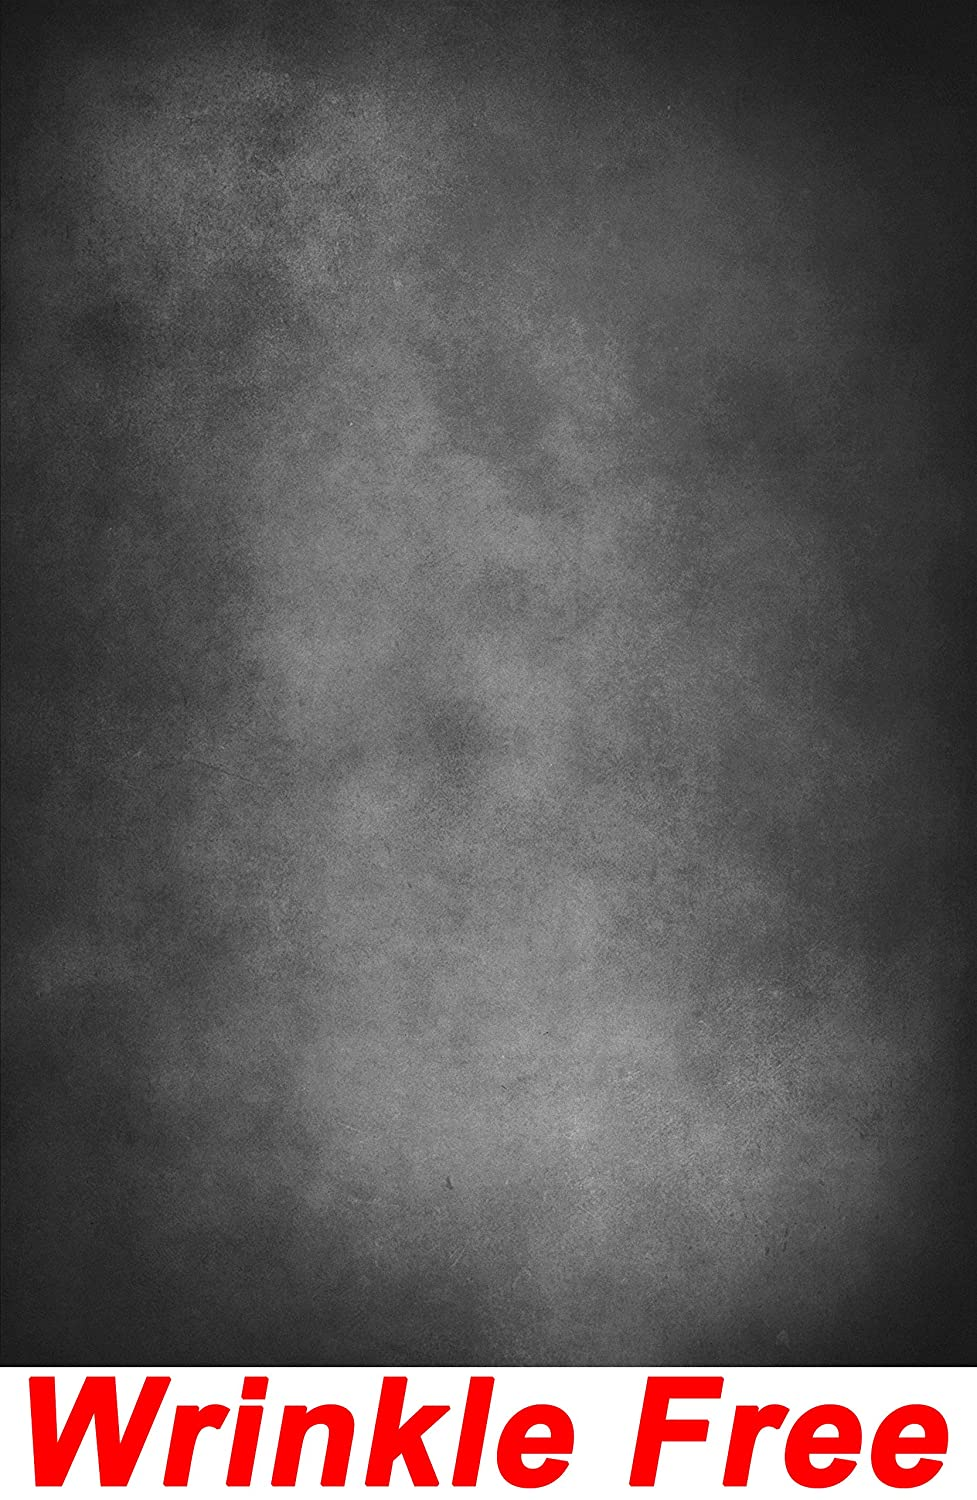 Dark Grey Concrete Wall Backdrop Wrinkle Free Cloth Rustic Grunge Weathered Cement Solid Gray Wall Portrait Photo Abstract Texture Printed Fabric Photography Background G0502, 10 Wide by 10 Tall